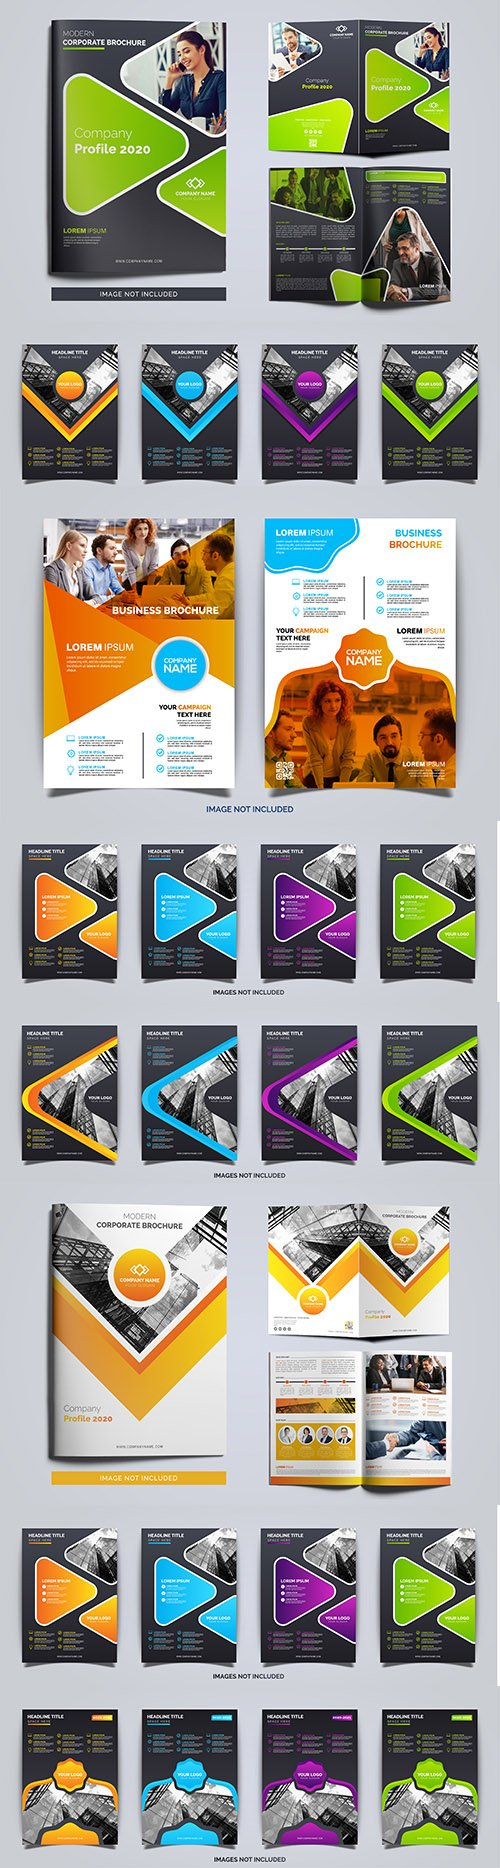 Elegant business brochure and company flyer template